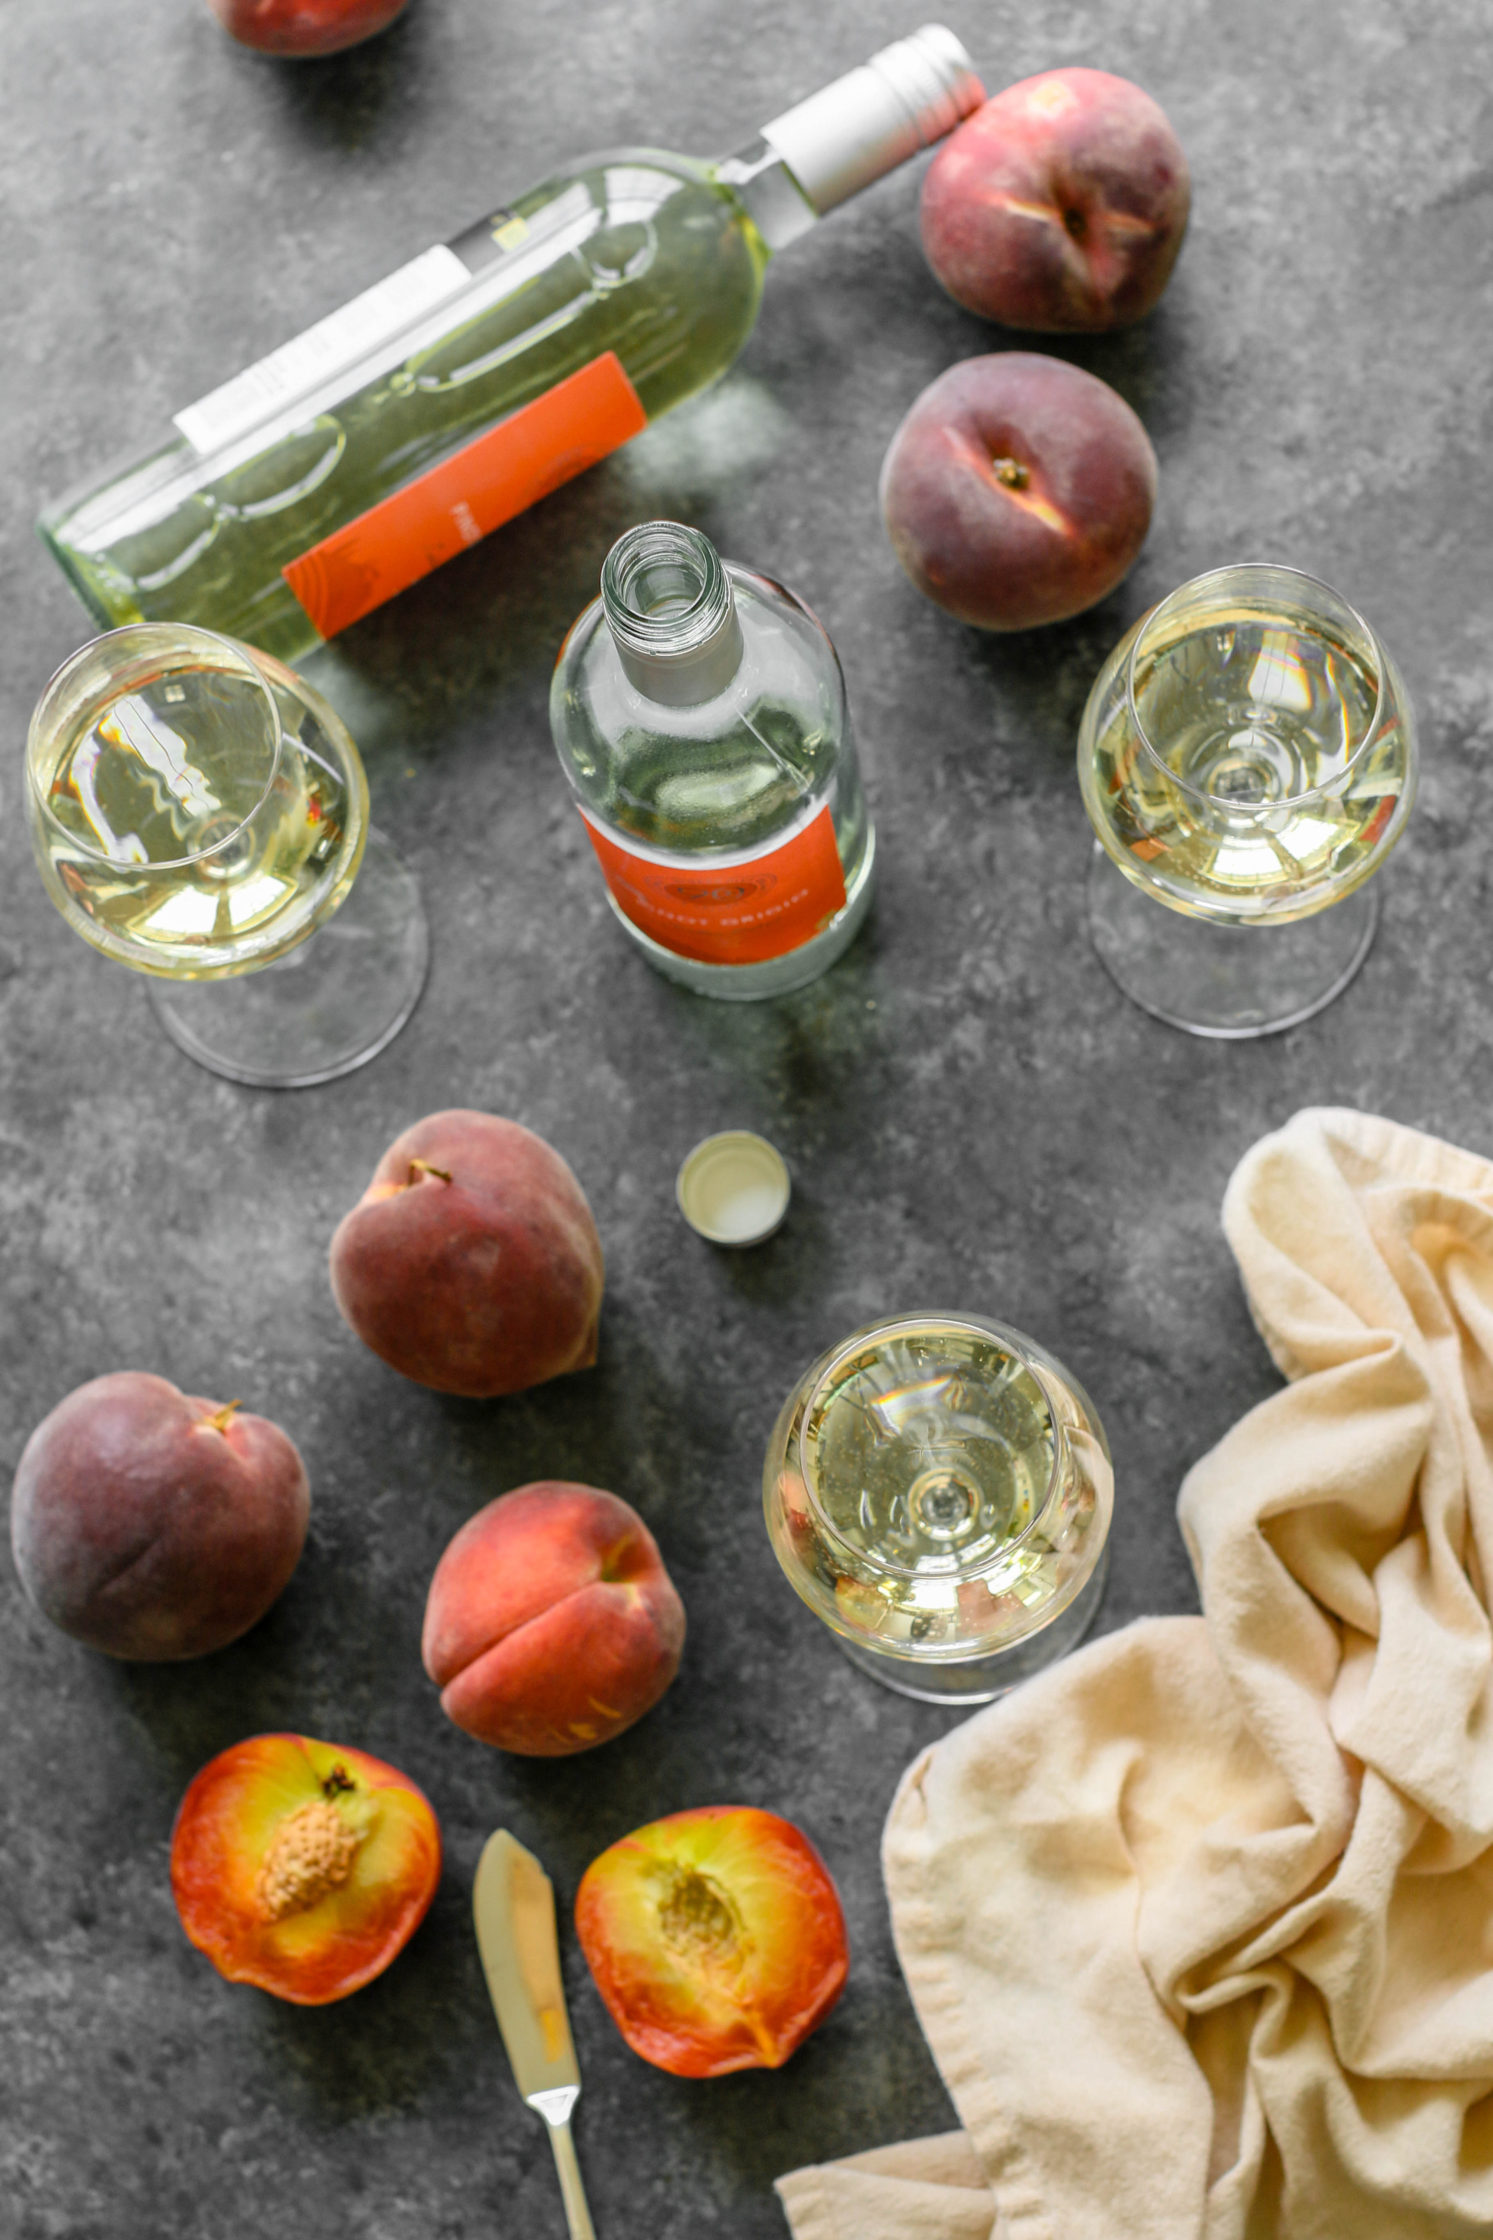 90+ Cellars Pinot Grigio and Peaches